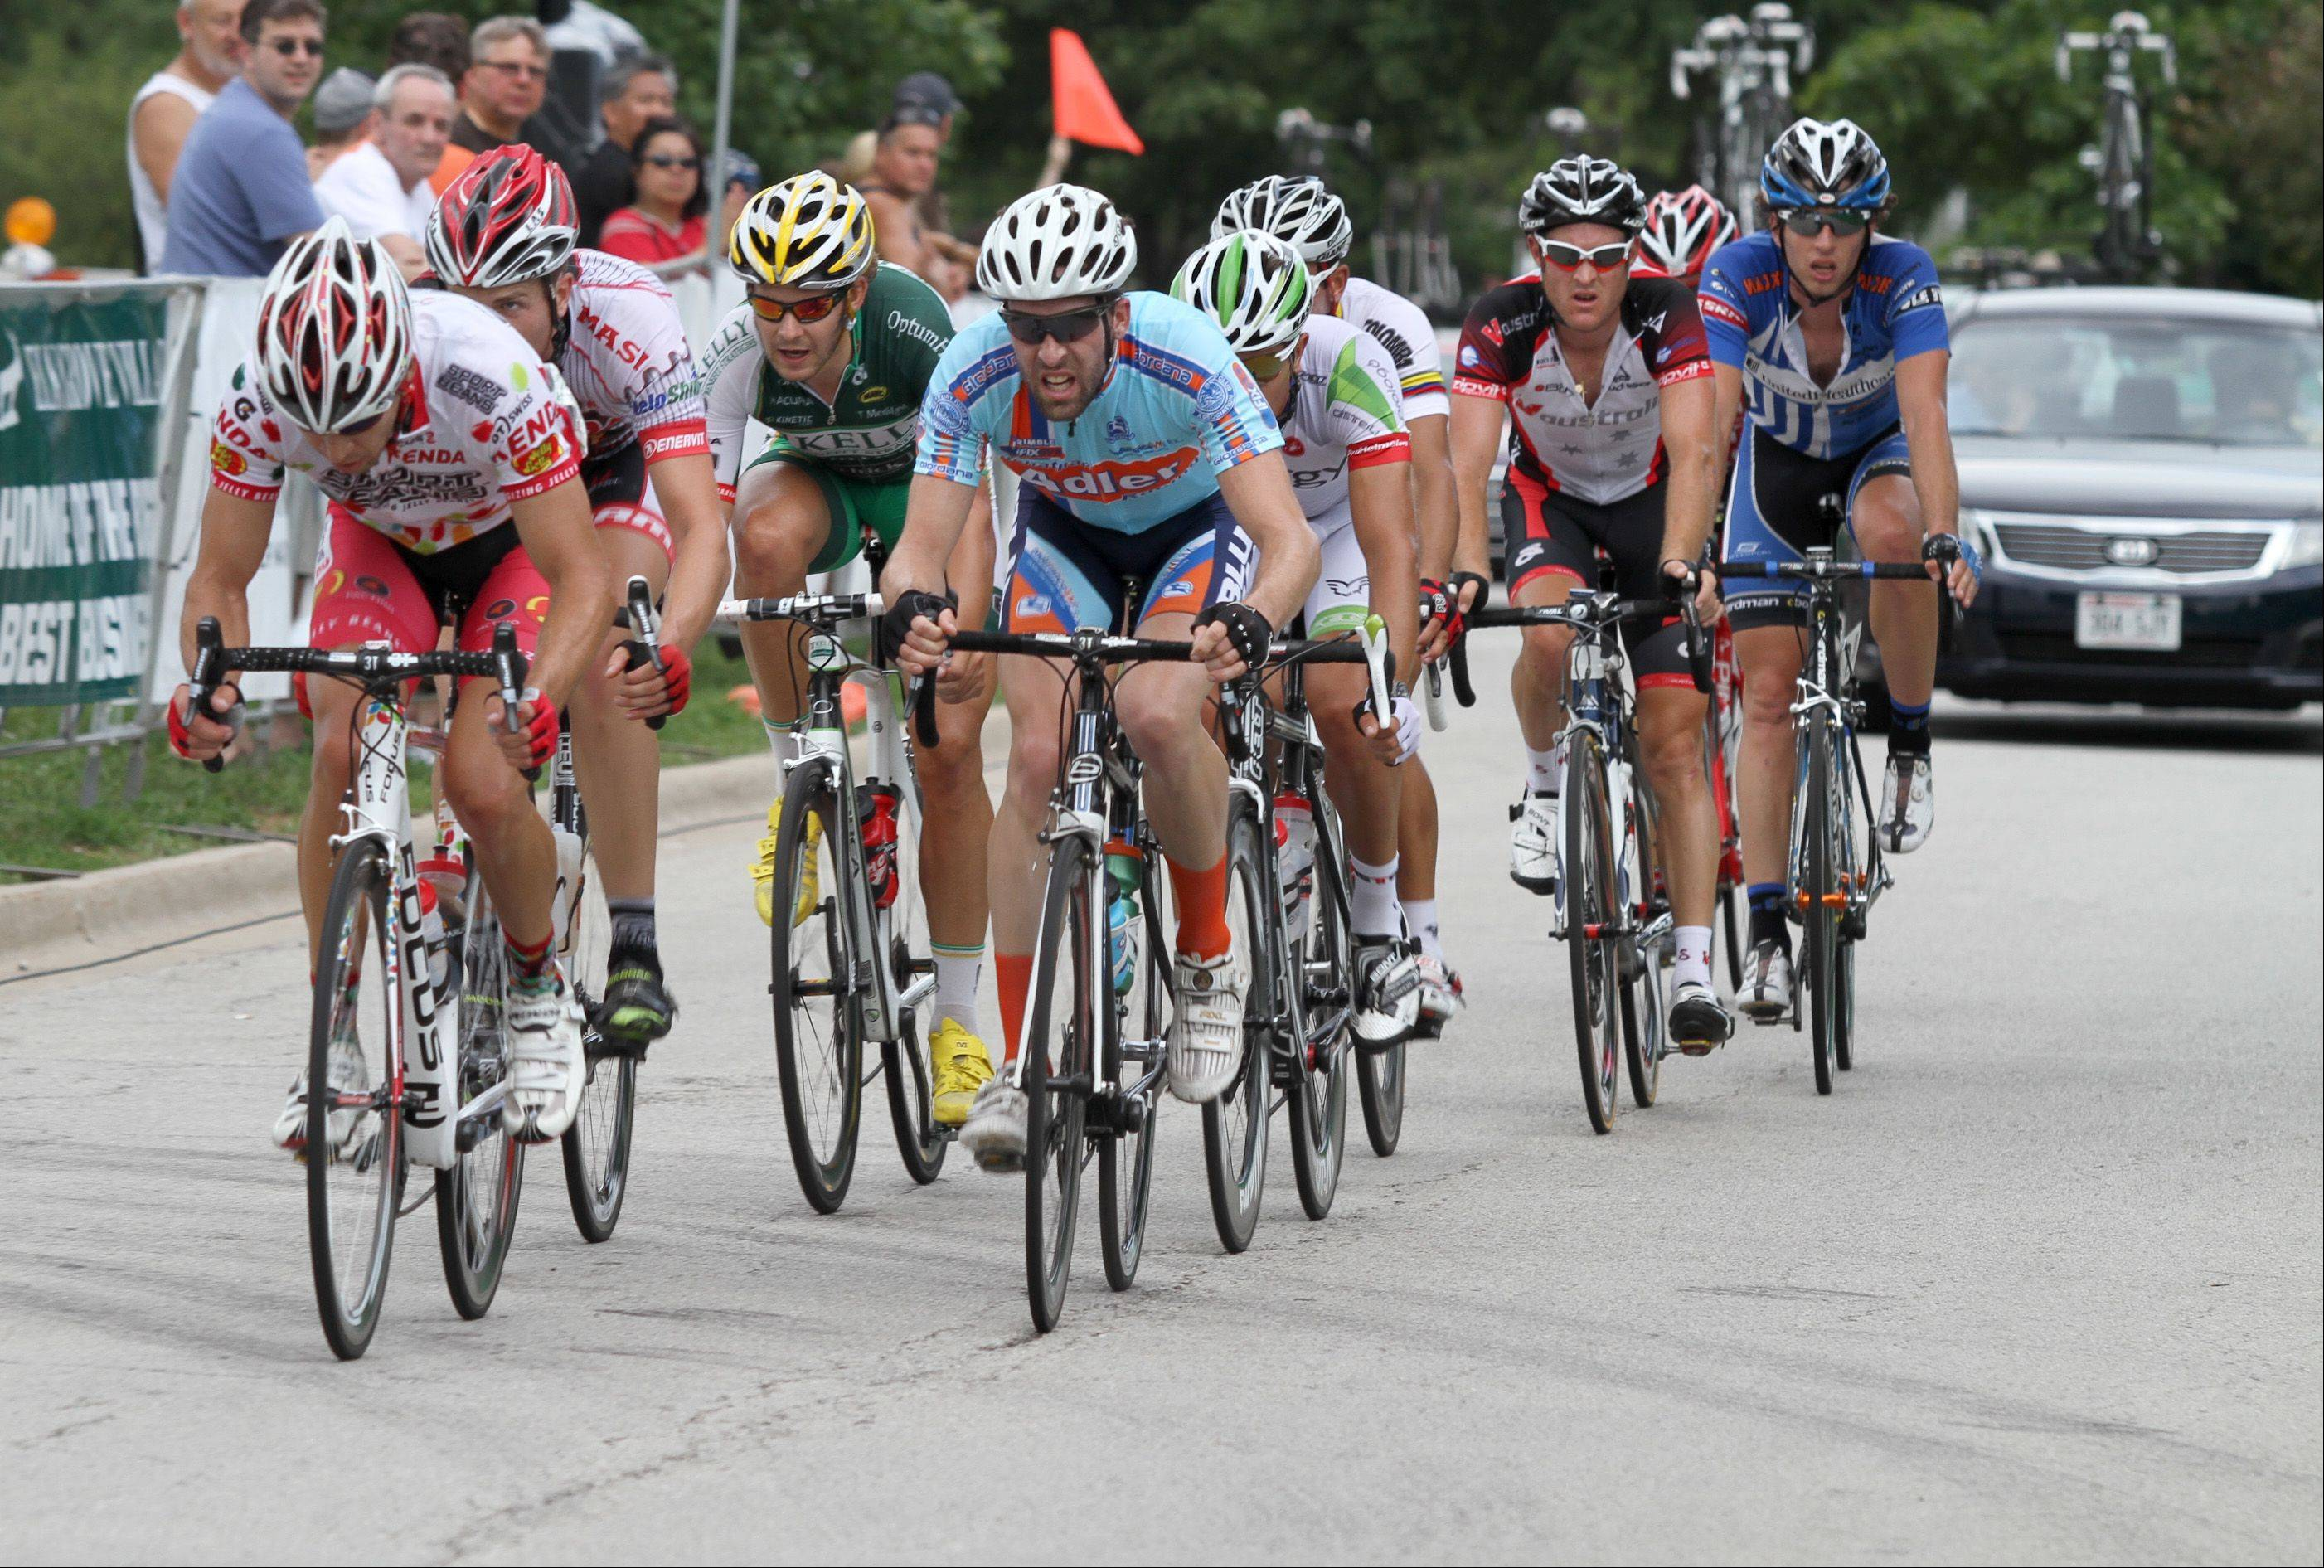 A pack of nine riders break from the rest during the men's stage 3 race Sunday afternoon at the 6th annual Alexian Brothers Tour of Elk Grove.